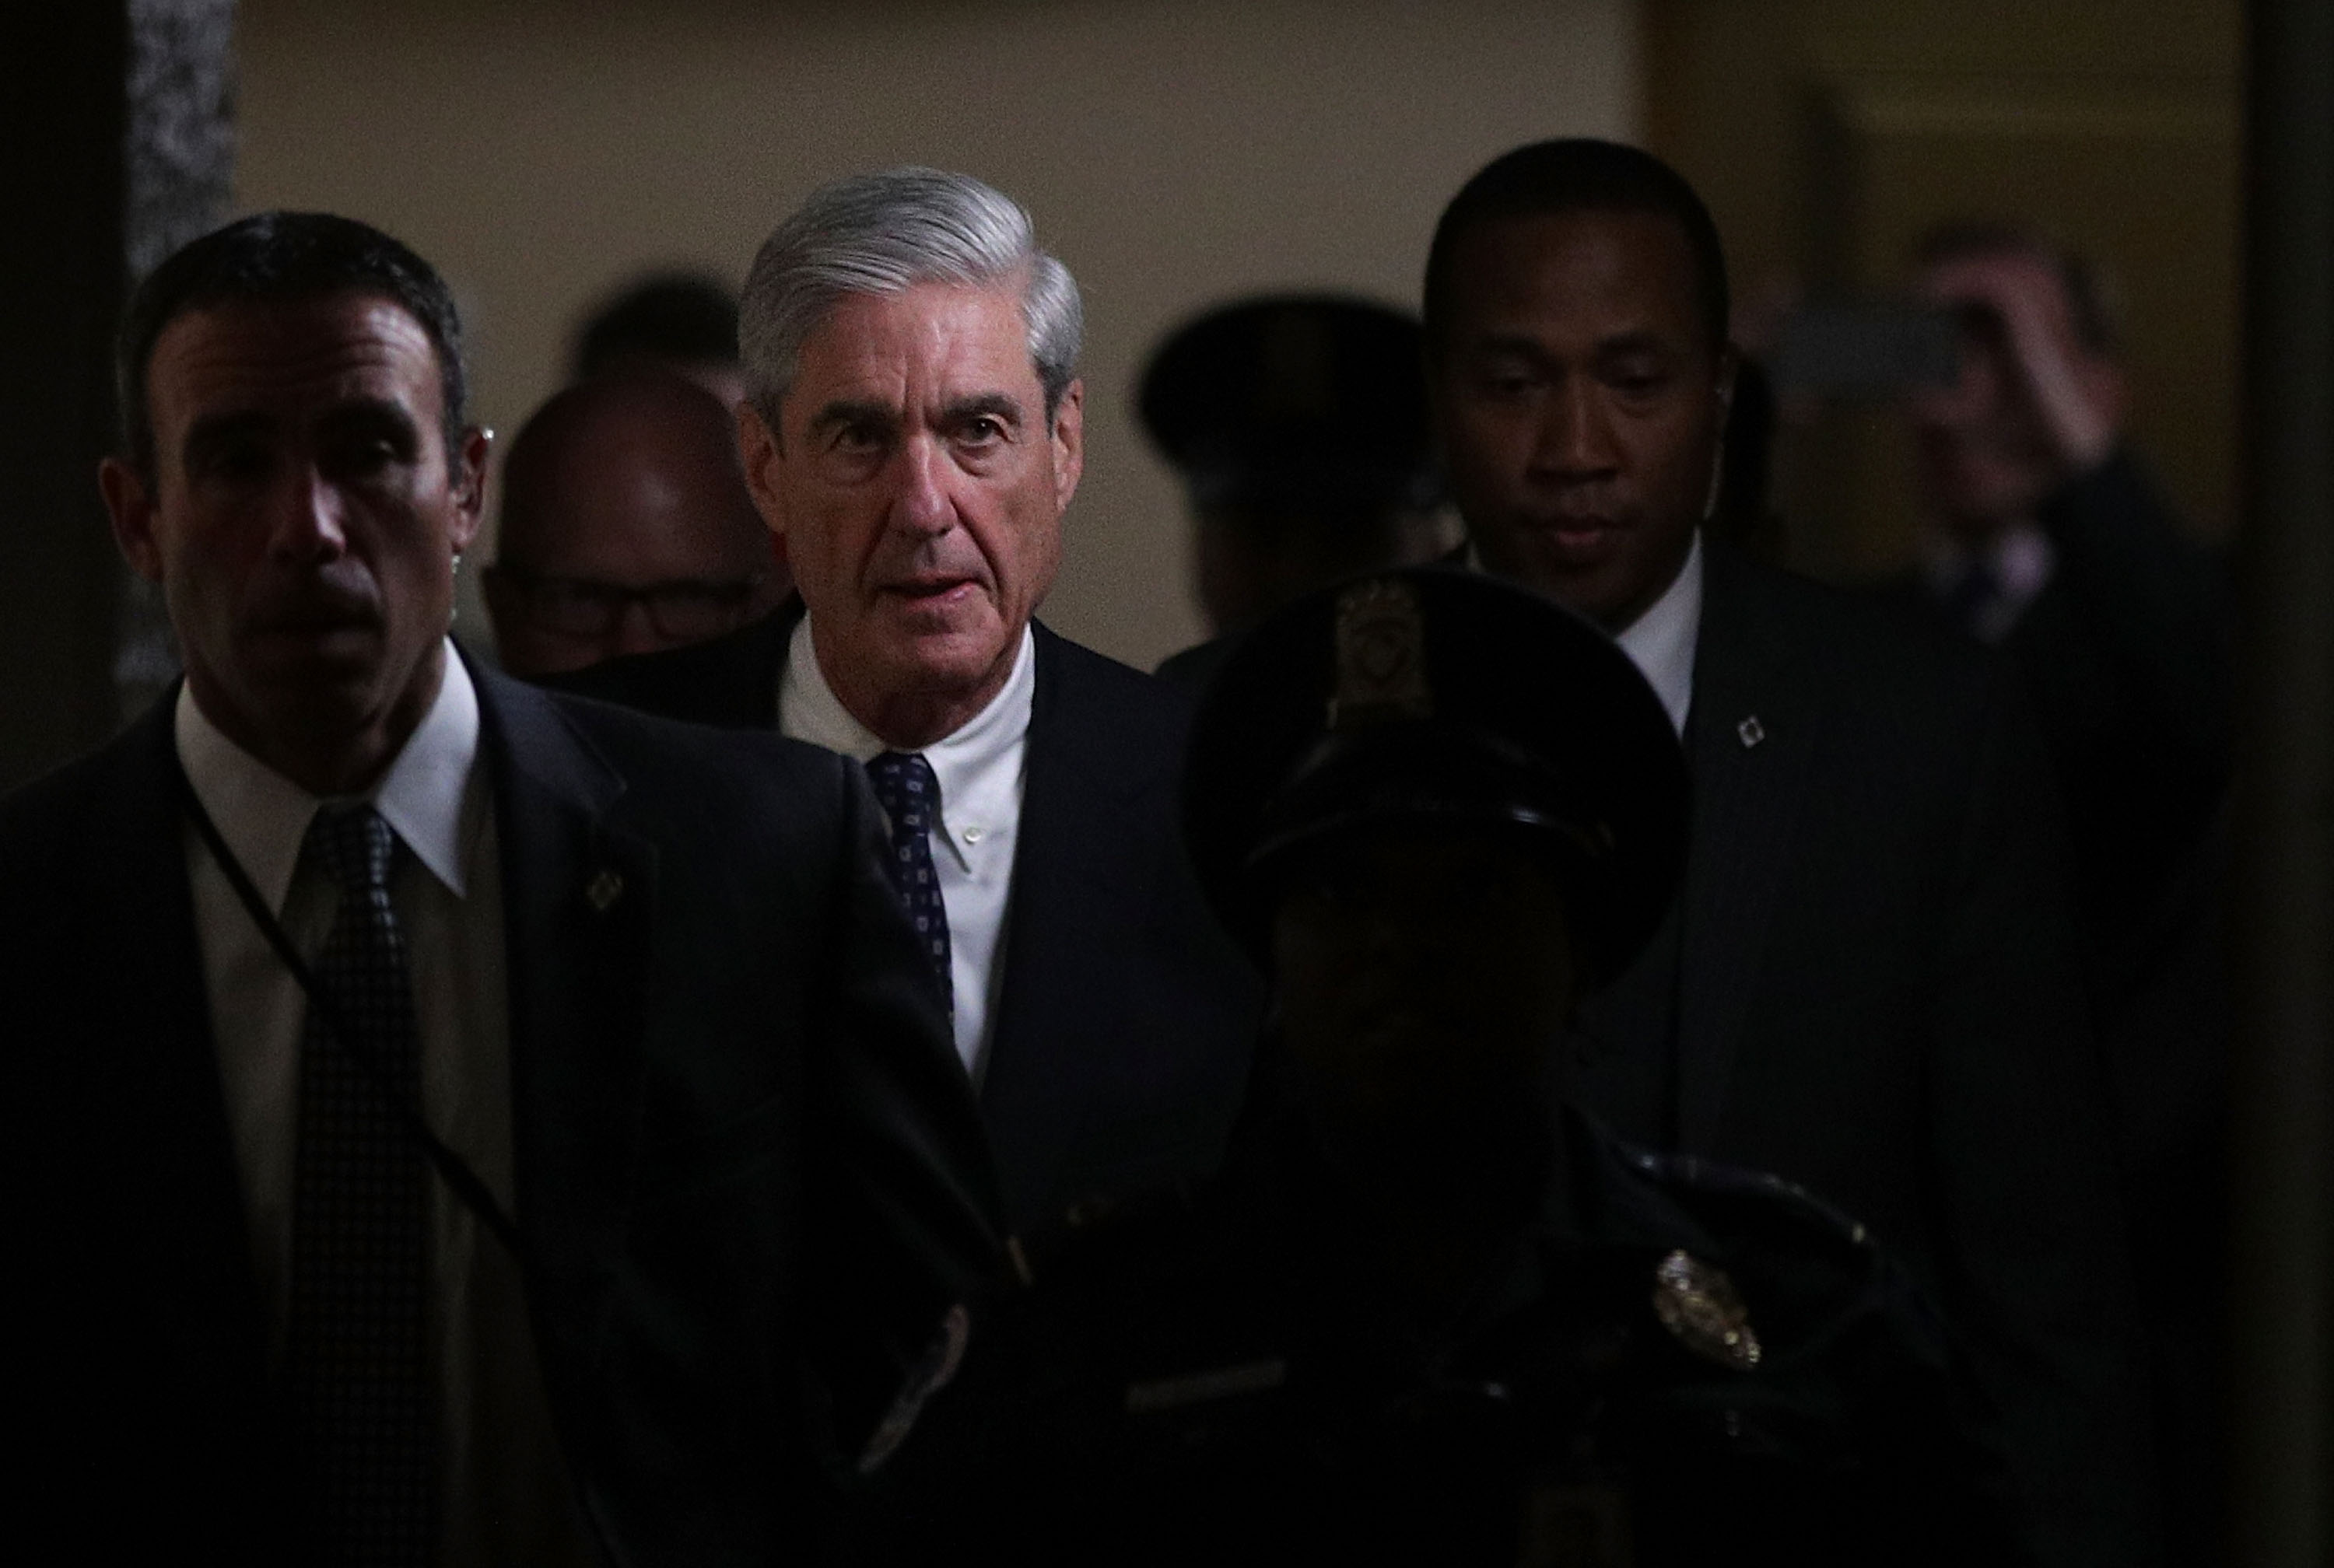 Special counsel Robert Mueller leaves after a closed meeting with members of the Senate Judiciary Committee on June 21, 2017, in Washington, D.C.